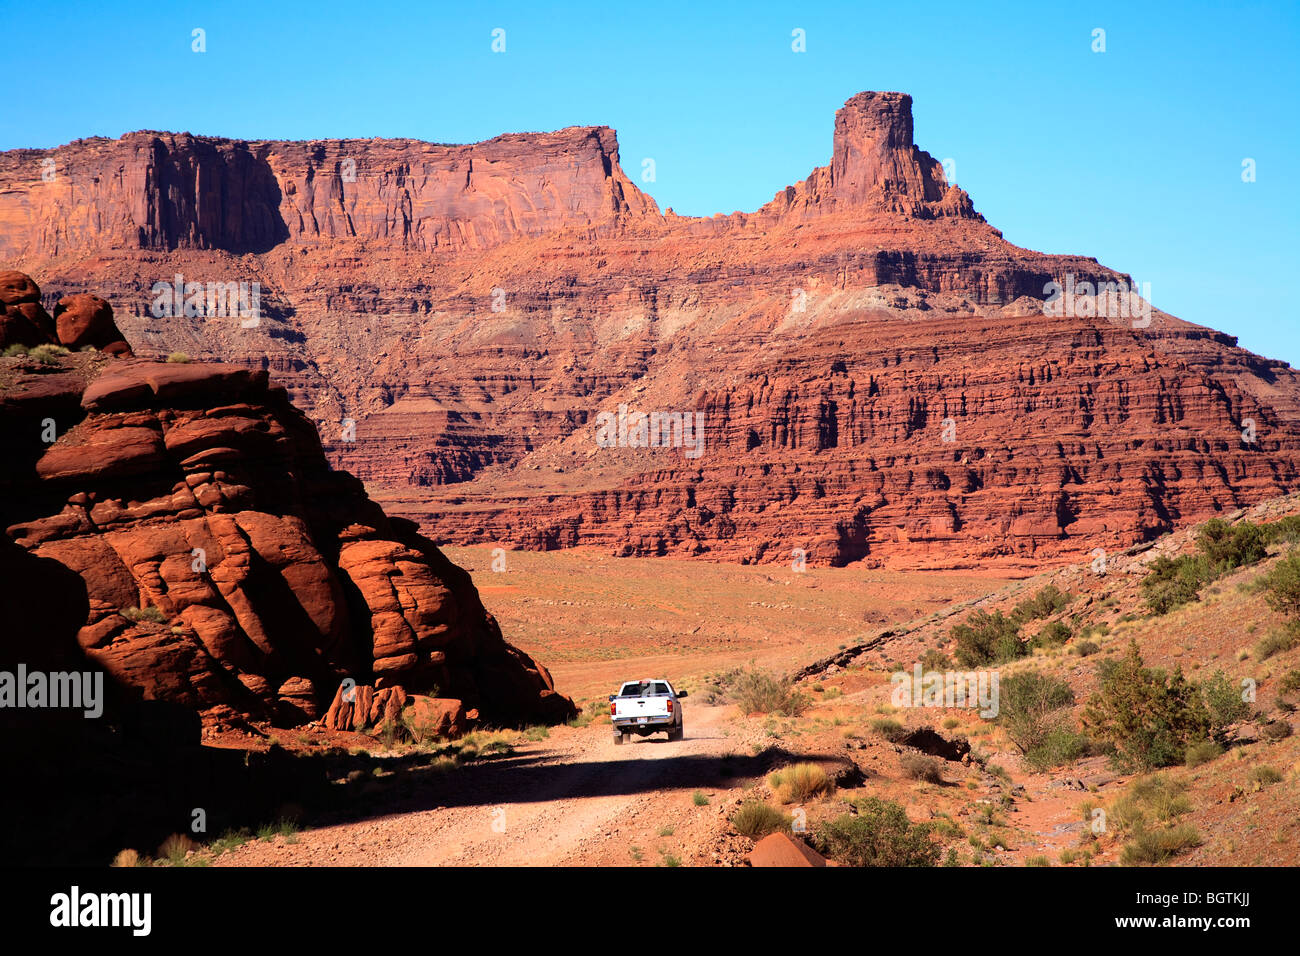 White Dodge truck on the Shafer Trail, Canyonlands National Park near Moab, Utah, USA - Stock Image